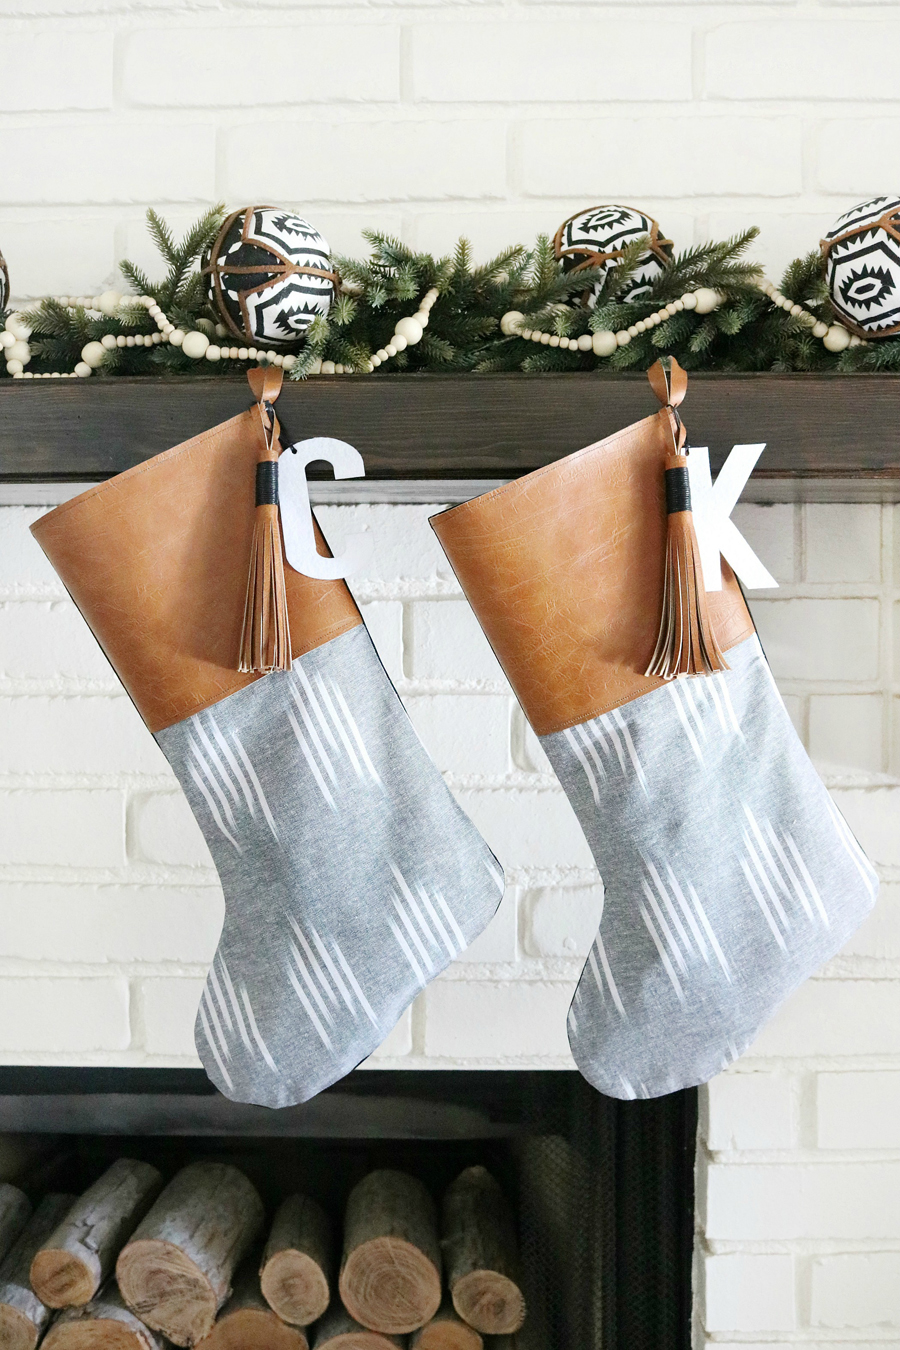 DIY Boho Leather Tassel Christmas Stockings